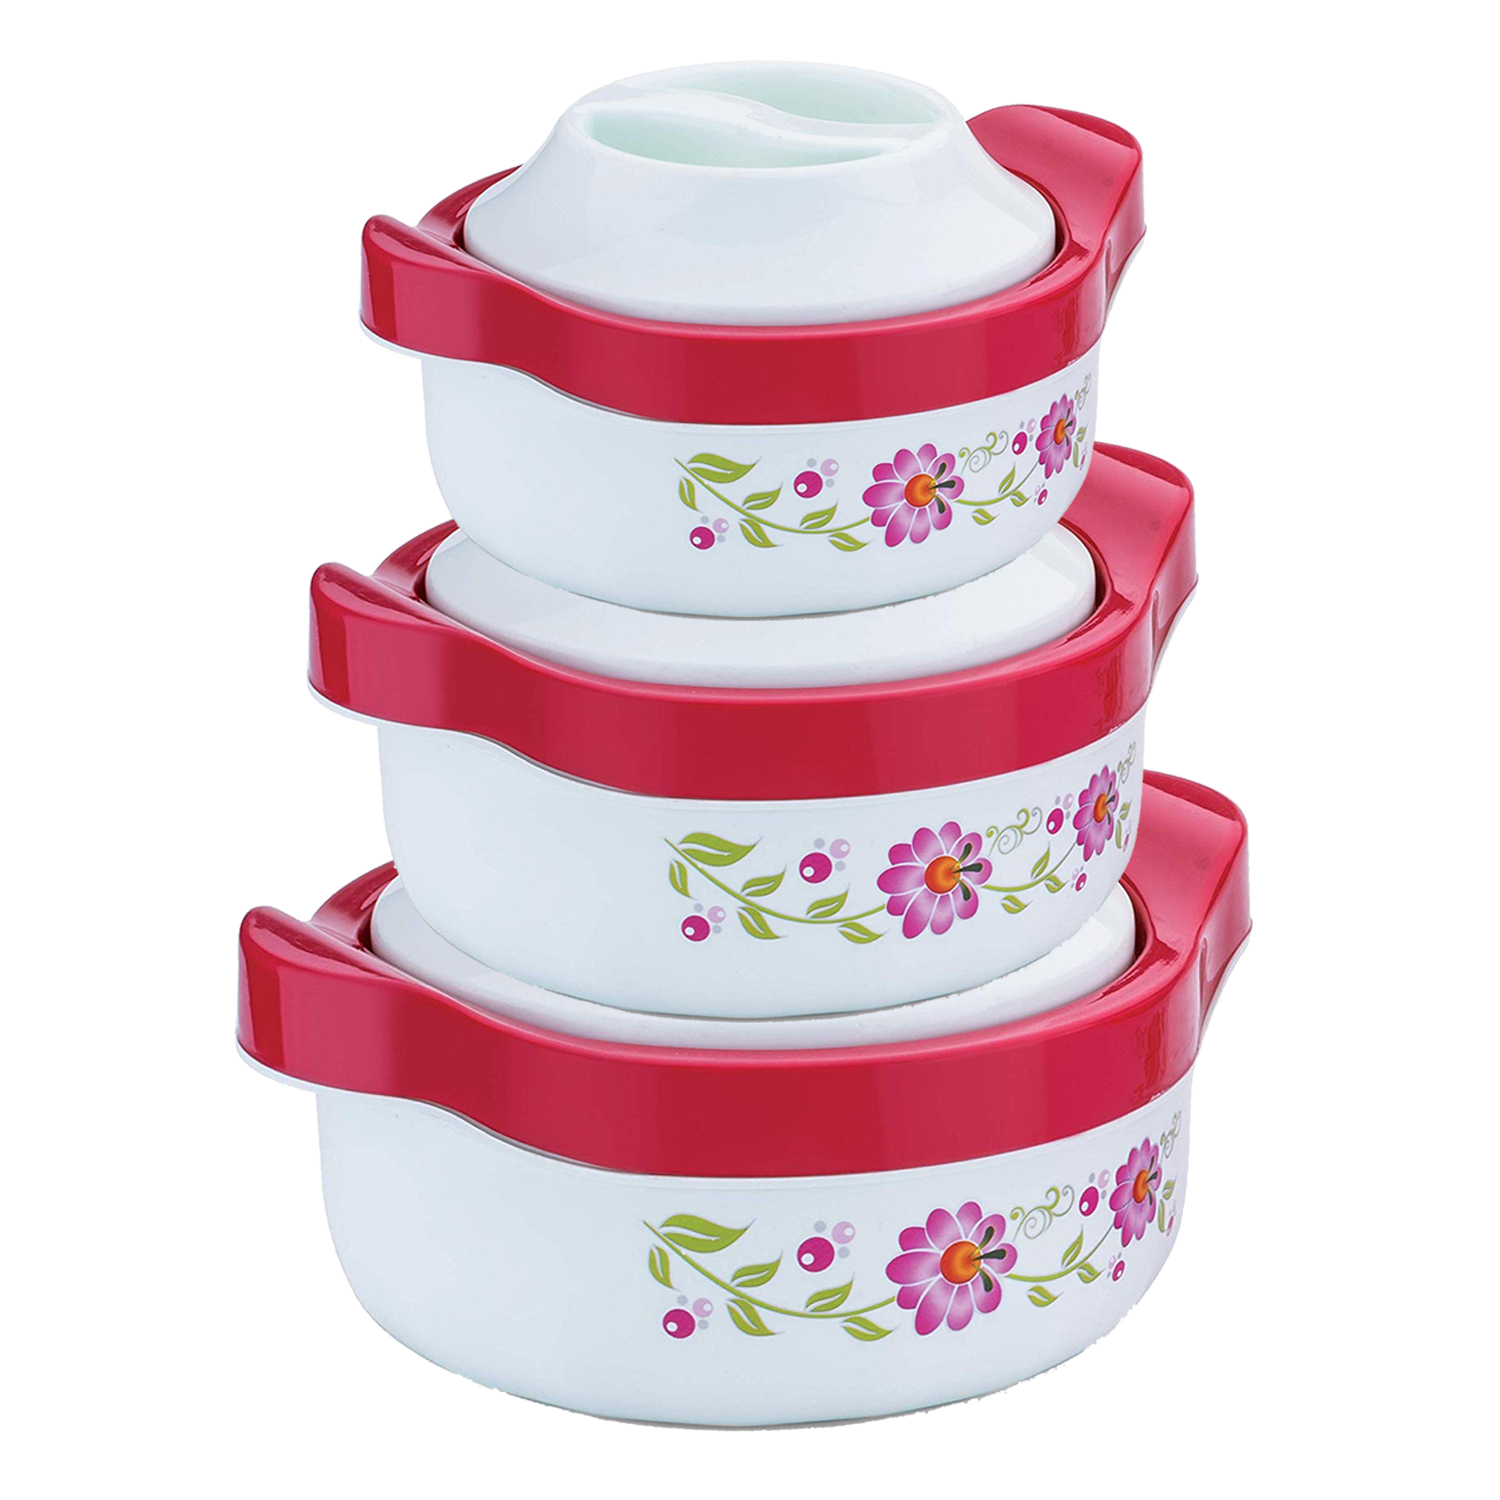 Kuber Industries Floral Design High Quality Plastic Insulated Steel Casseroles Set Of 3 Pcs,750 ML,1000 ML,1500 ML (Light Green) - CTKTC30911